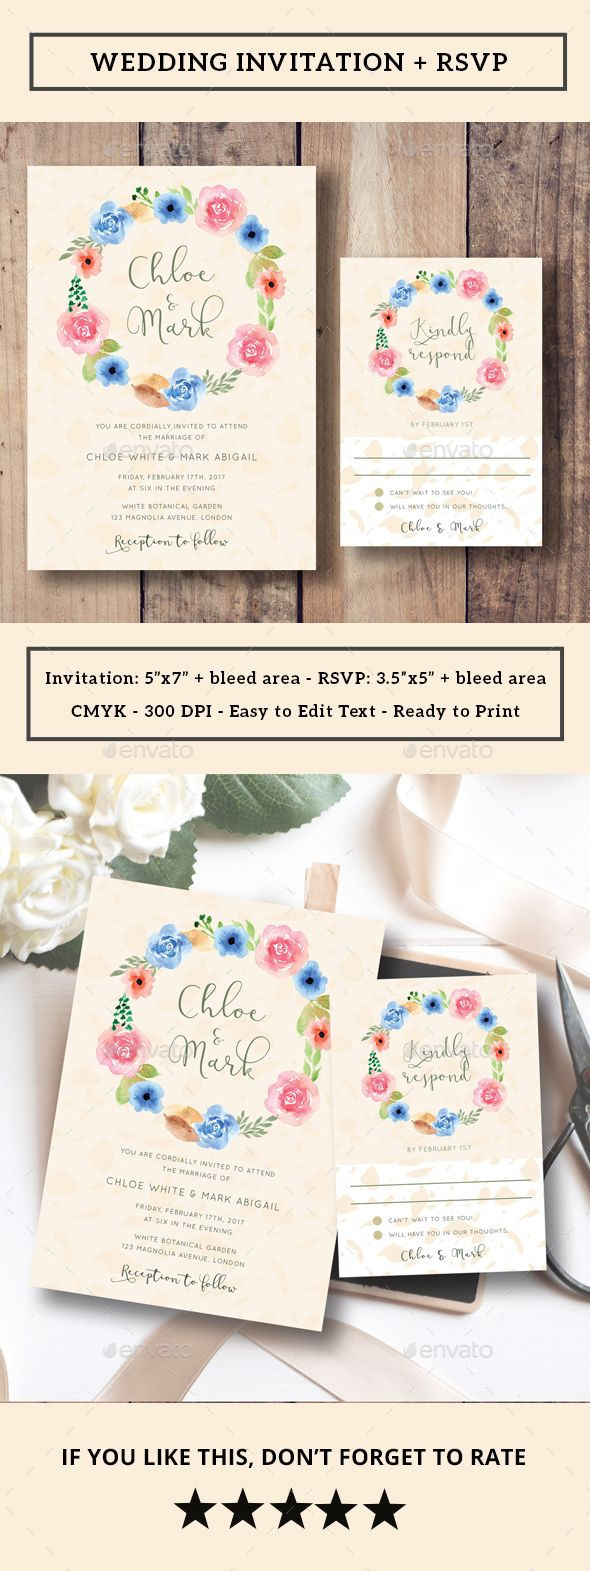 wedding invitation label templates%0A administrative assistant resume samples